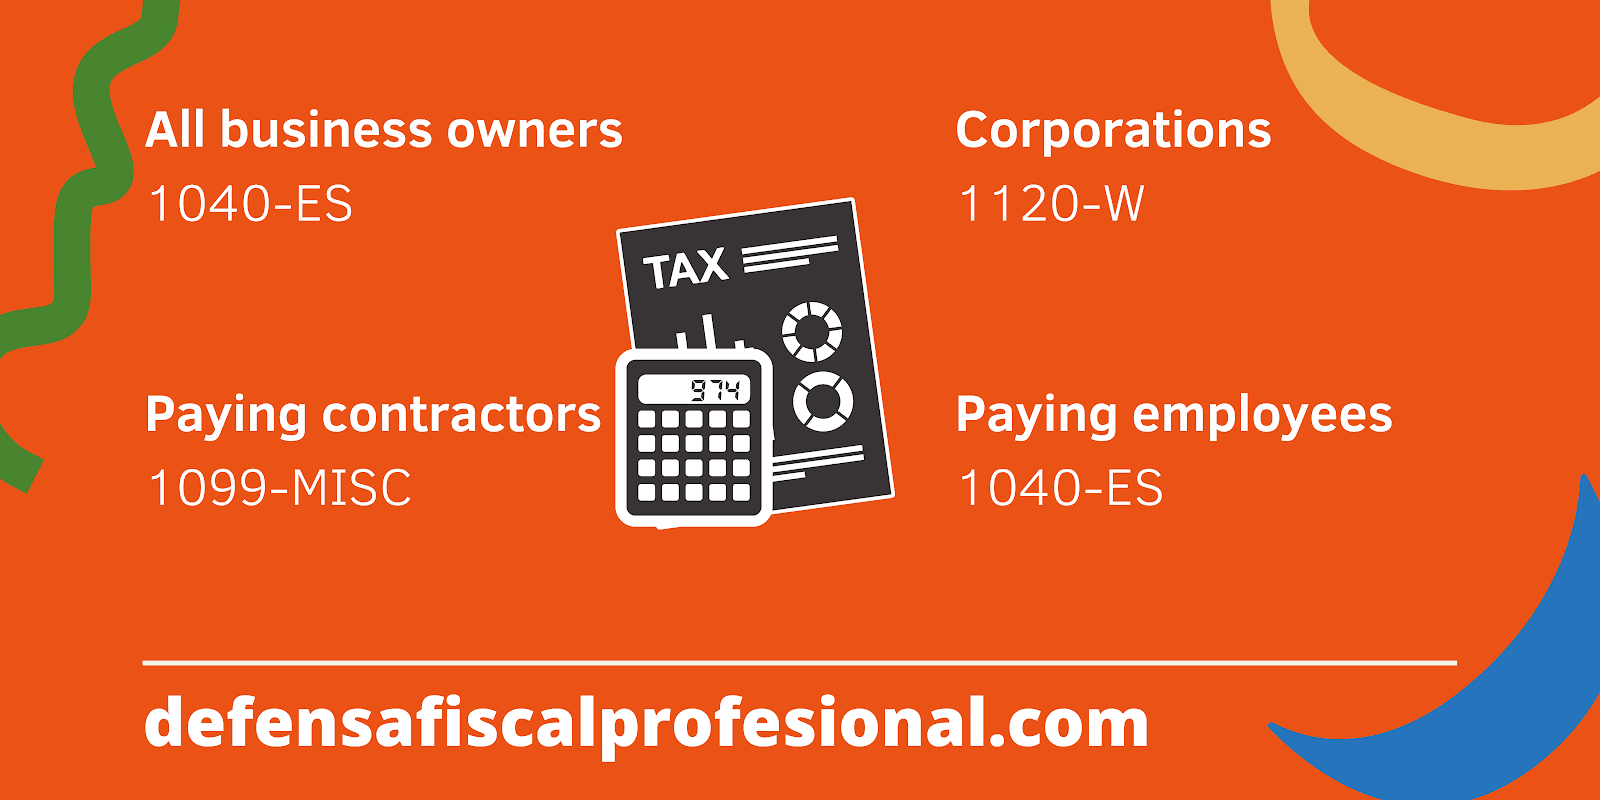 Infographic showing different tax forms